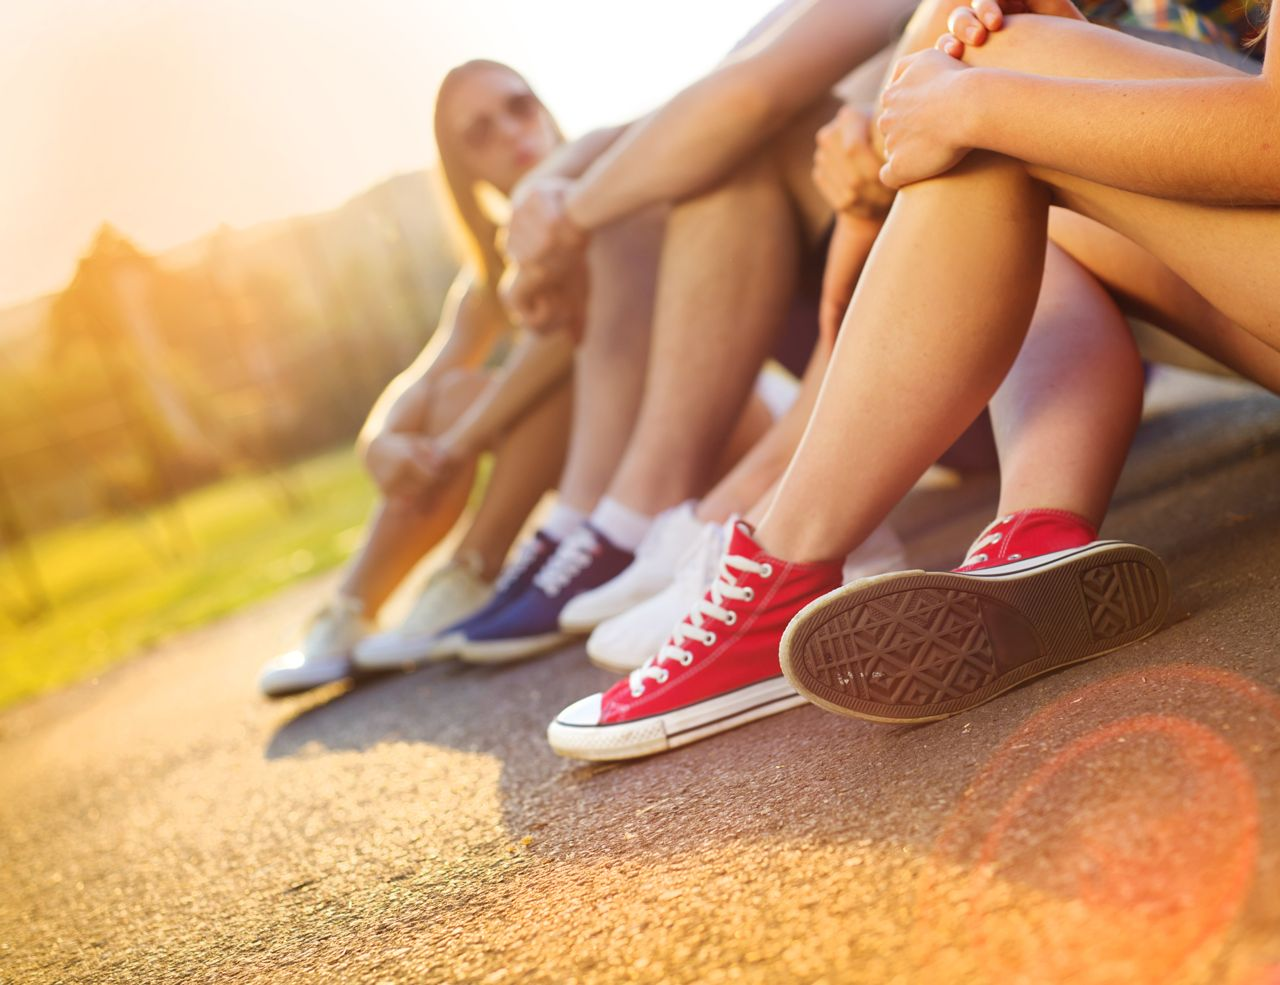 Teenagers sitting on pavement